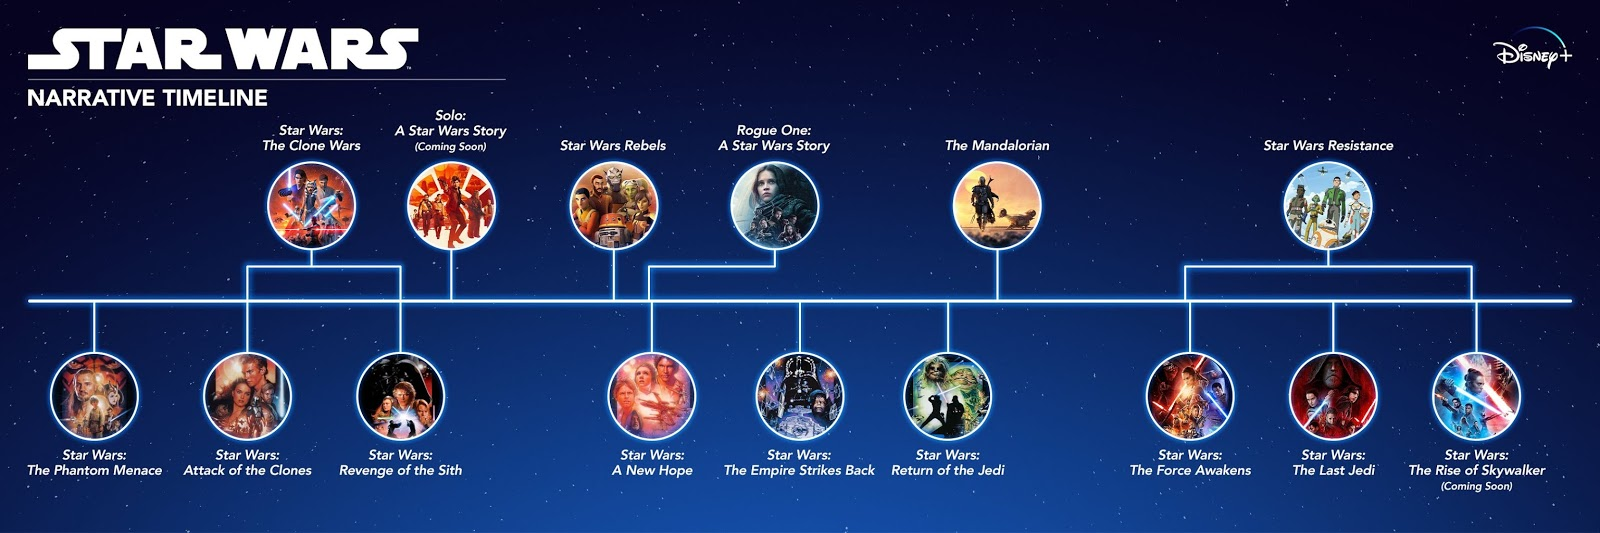 The Chronological Timeline Order Of The Star Wars Movies In A Far Away Galaxy Meta Charset Utf 8